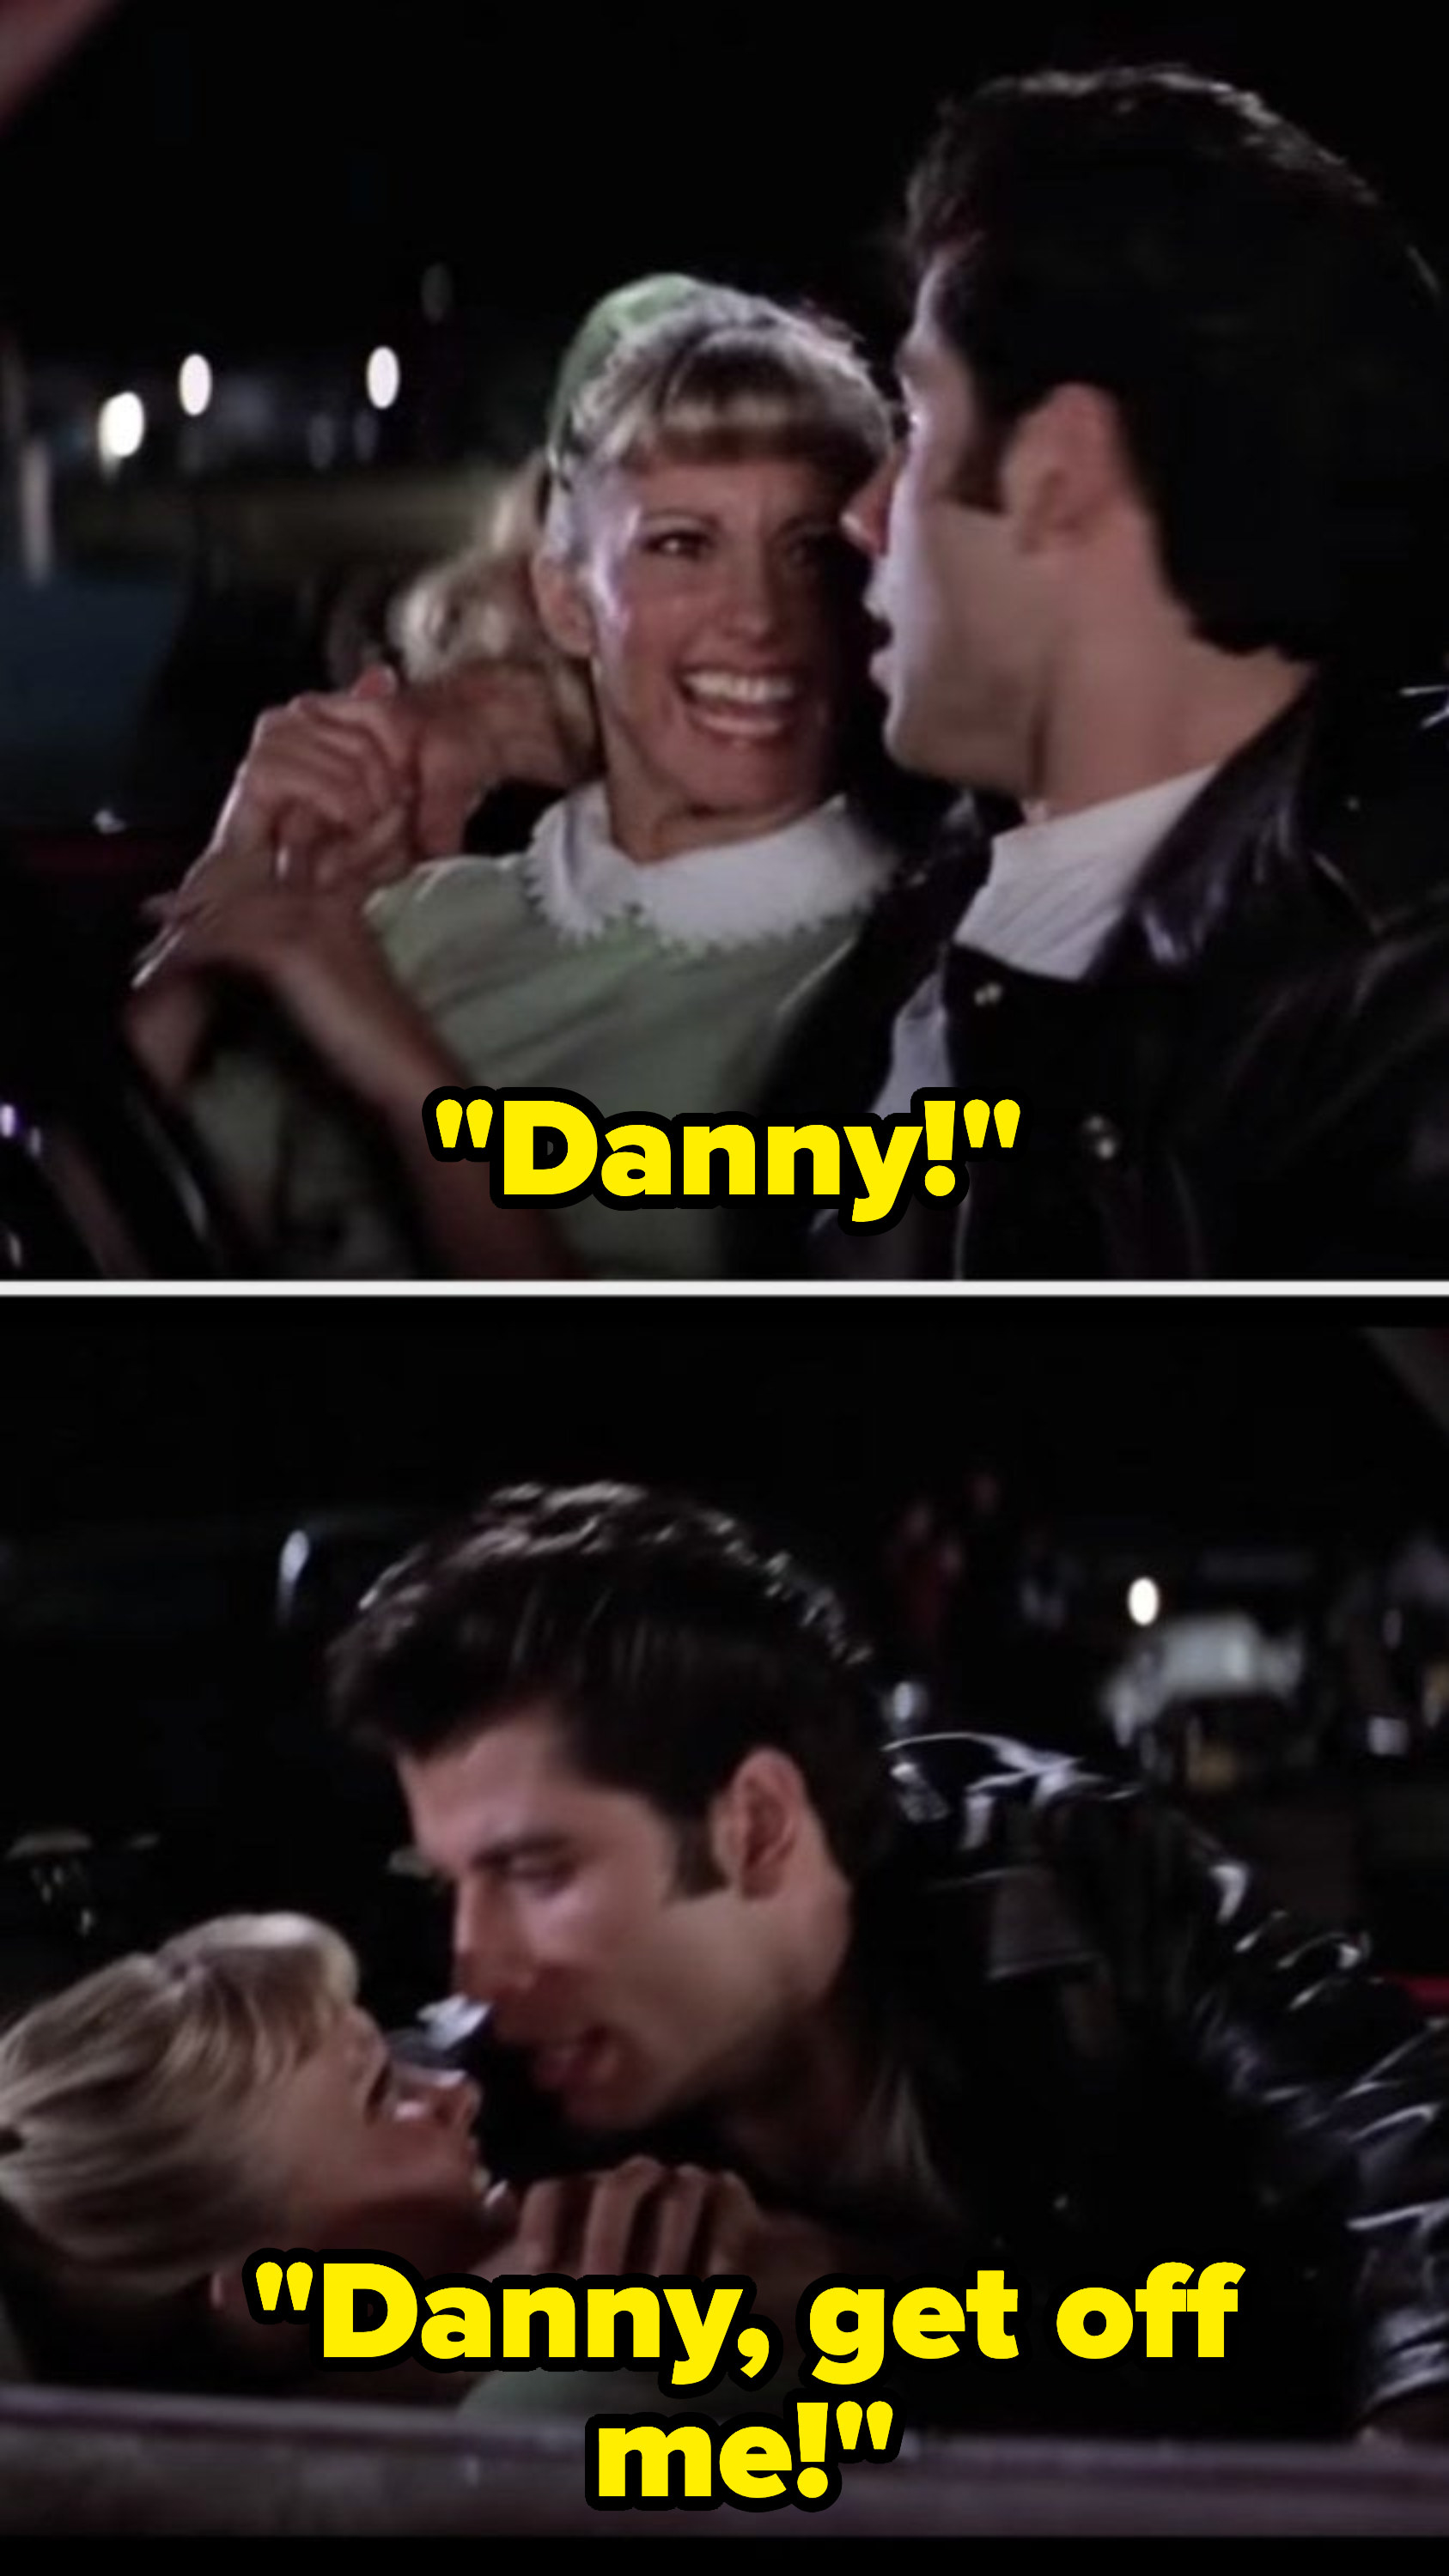 Danny forcing himself on top of Sandy in the car and Sandy screaming at him to get off of her.